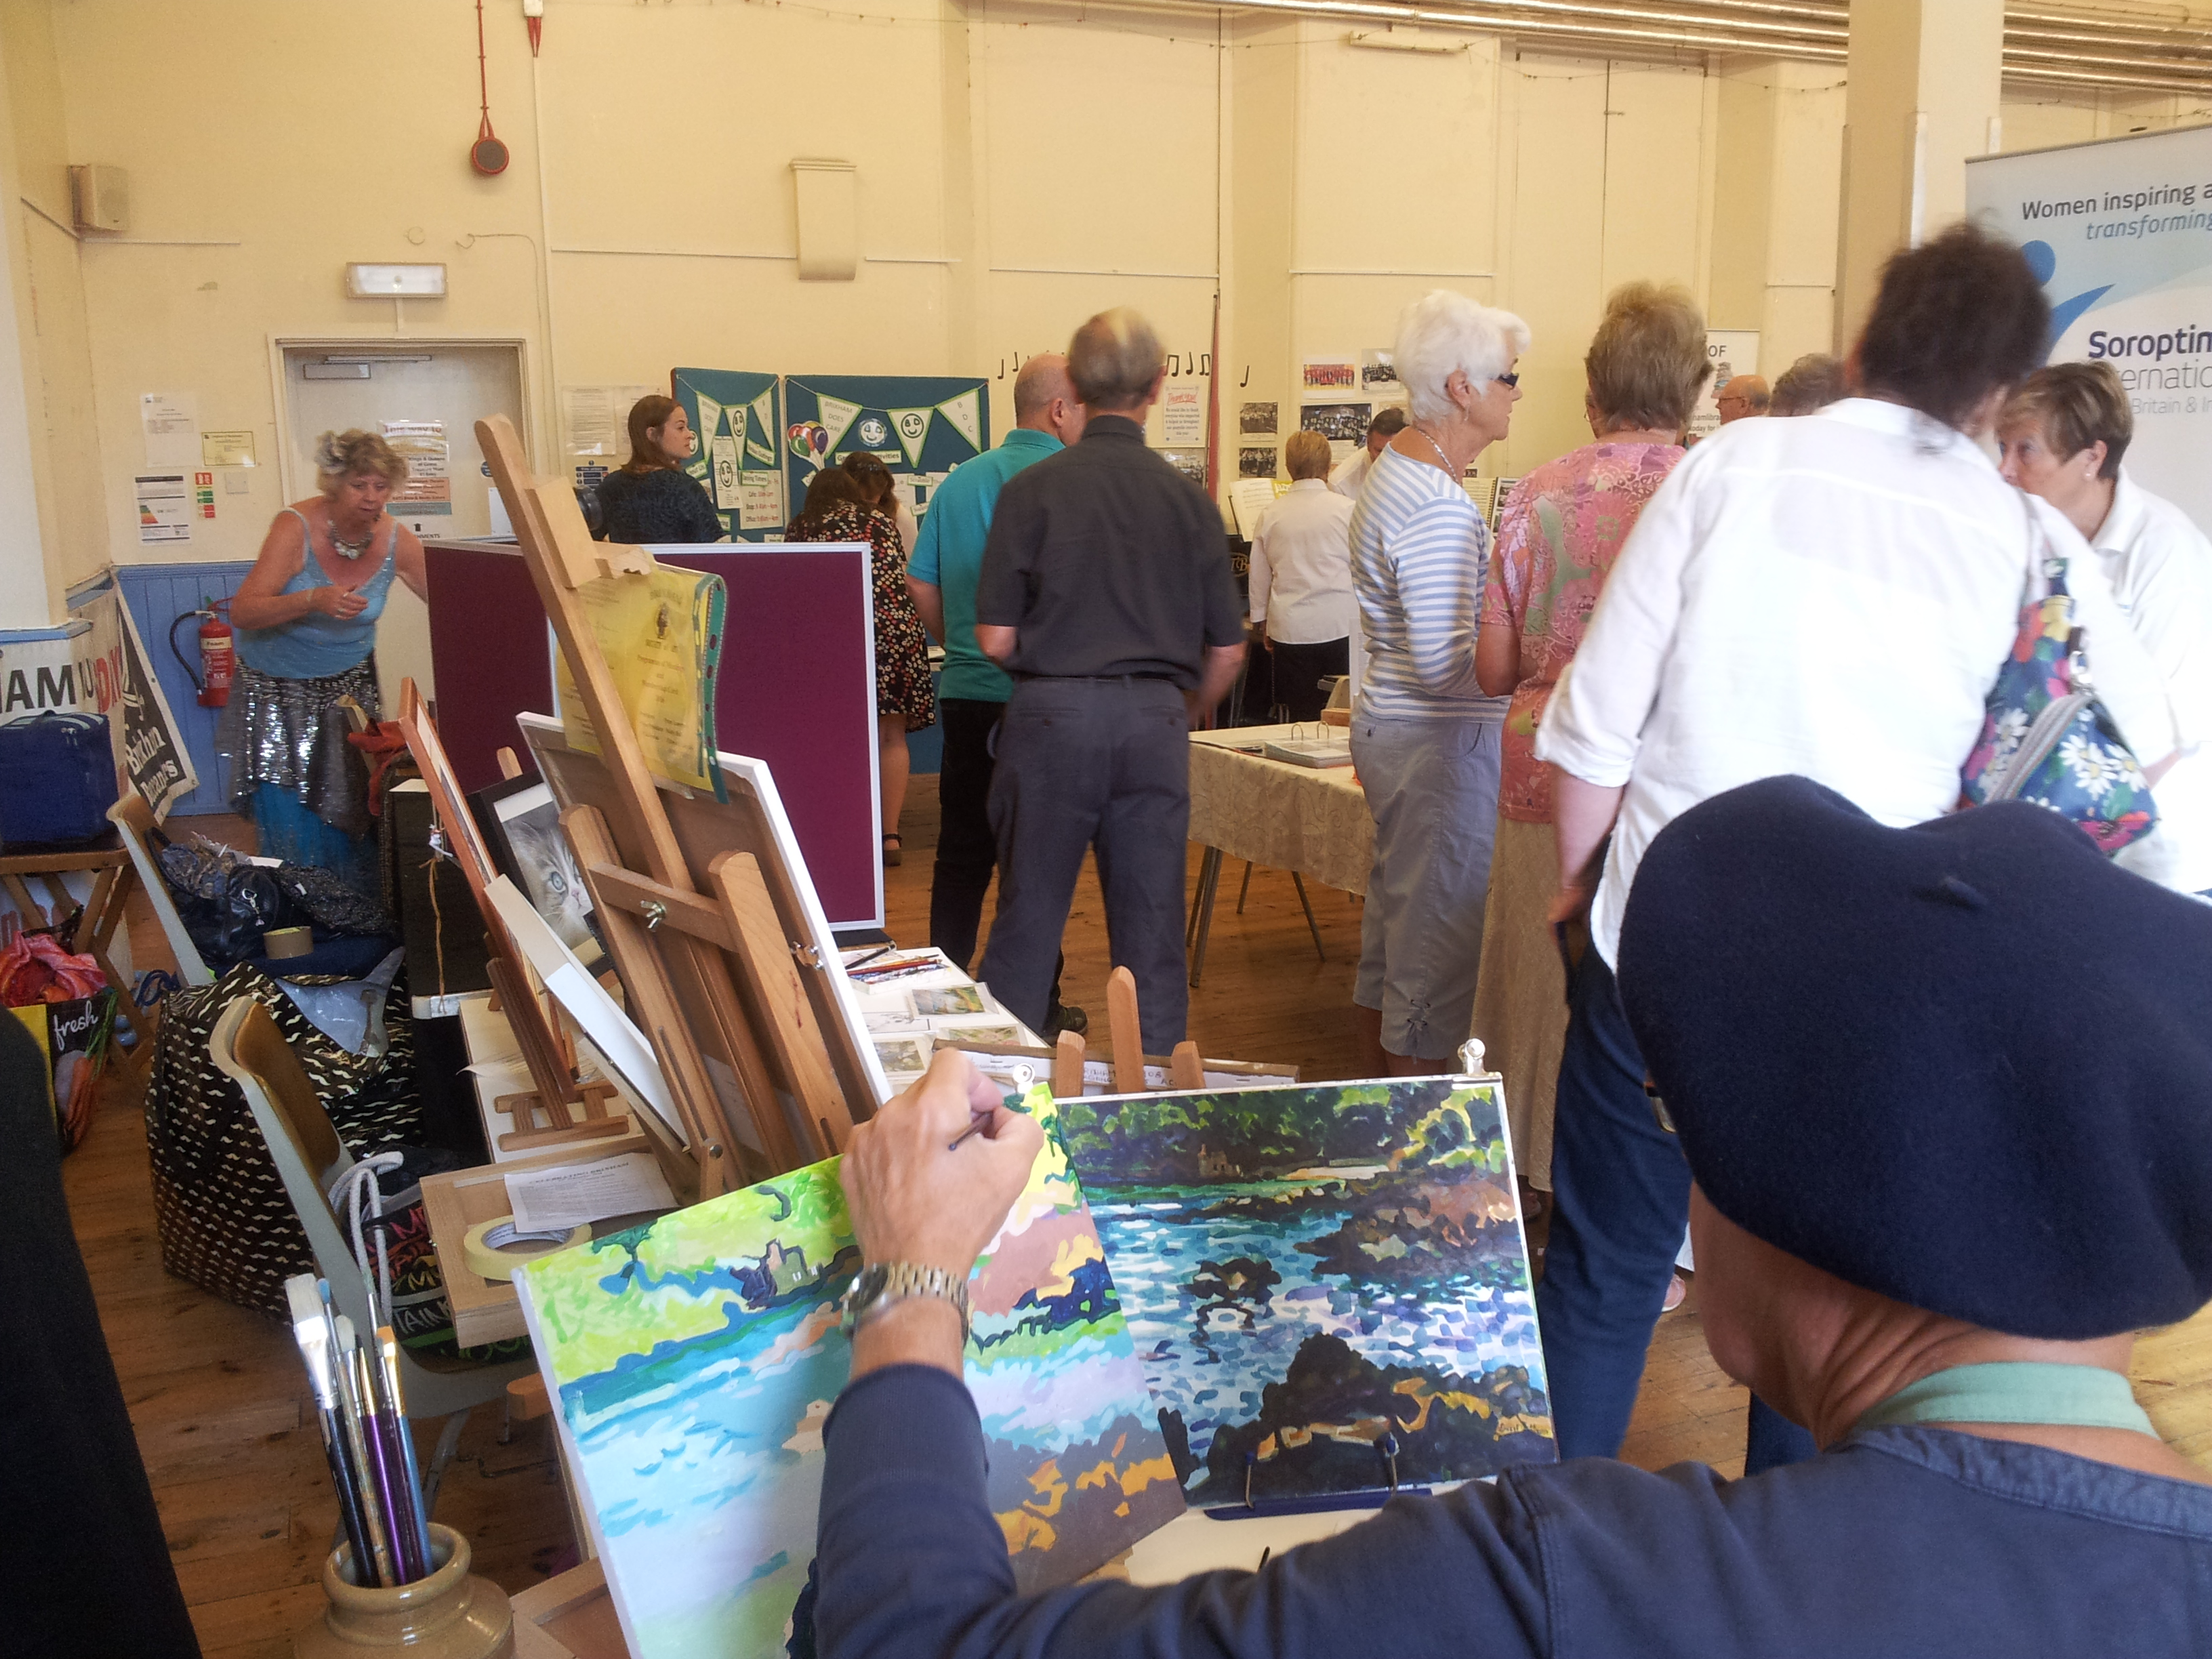 Event in Sept to attract new members